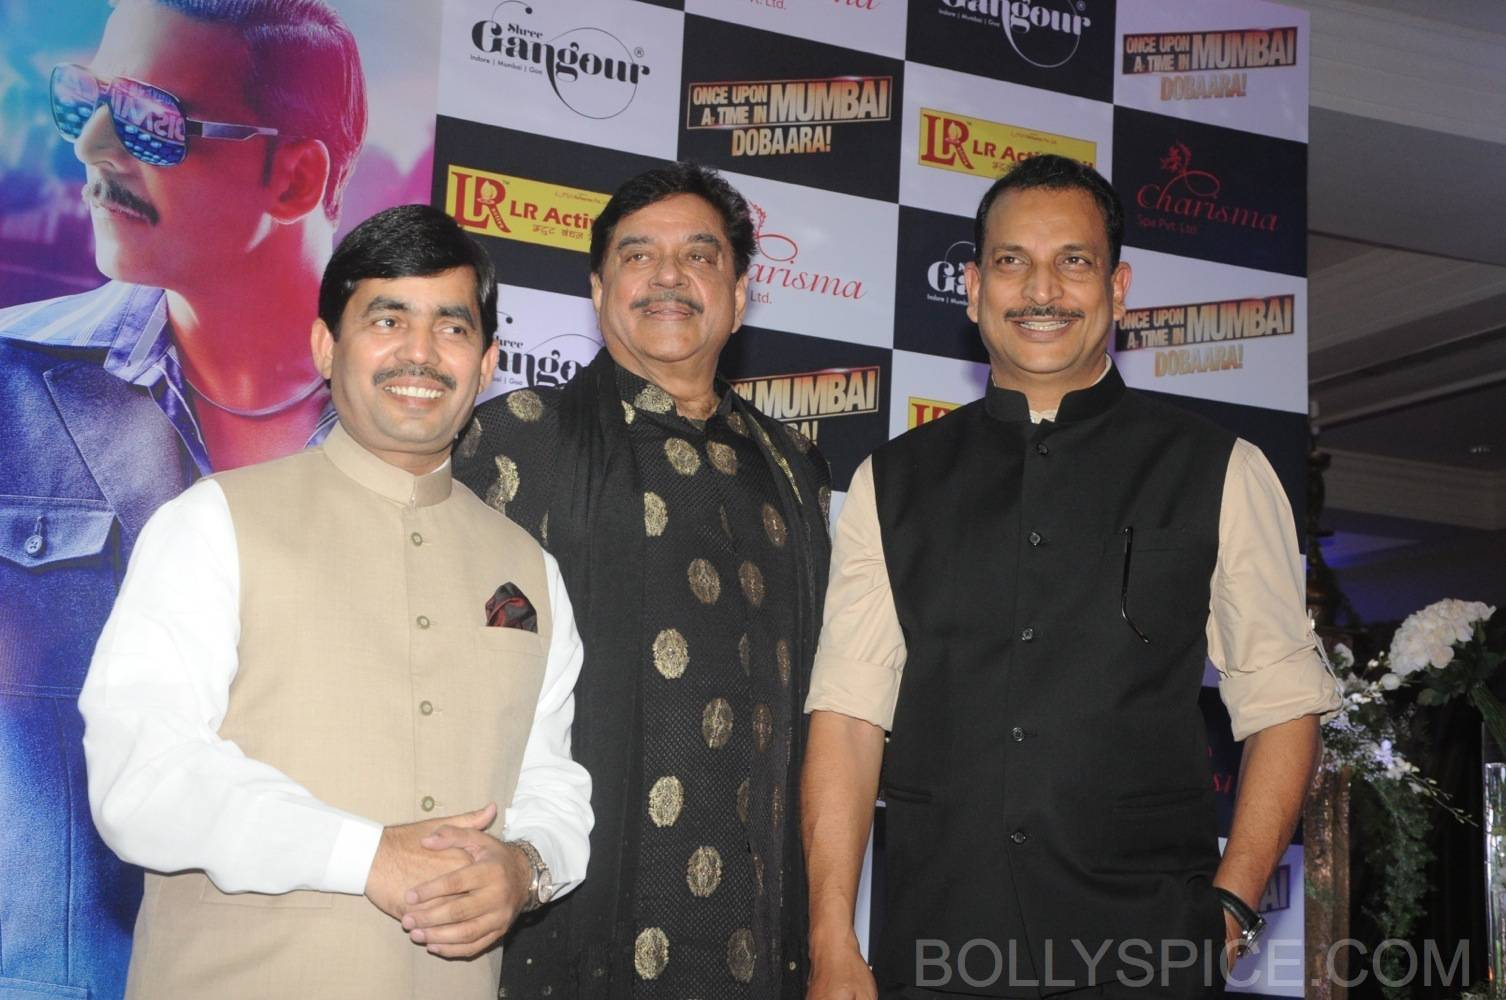 ouatimdiftaarparty14 IN PICTURES: Celebs at the Once Upon A Time in Mumbai Dobaara Iftaar Party